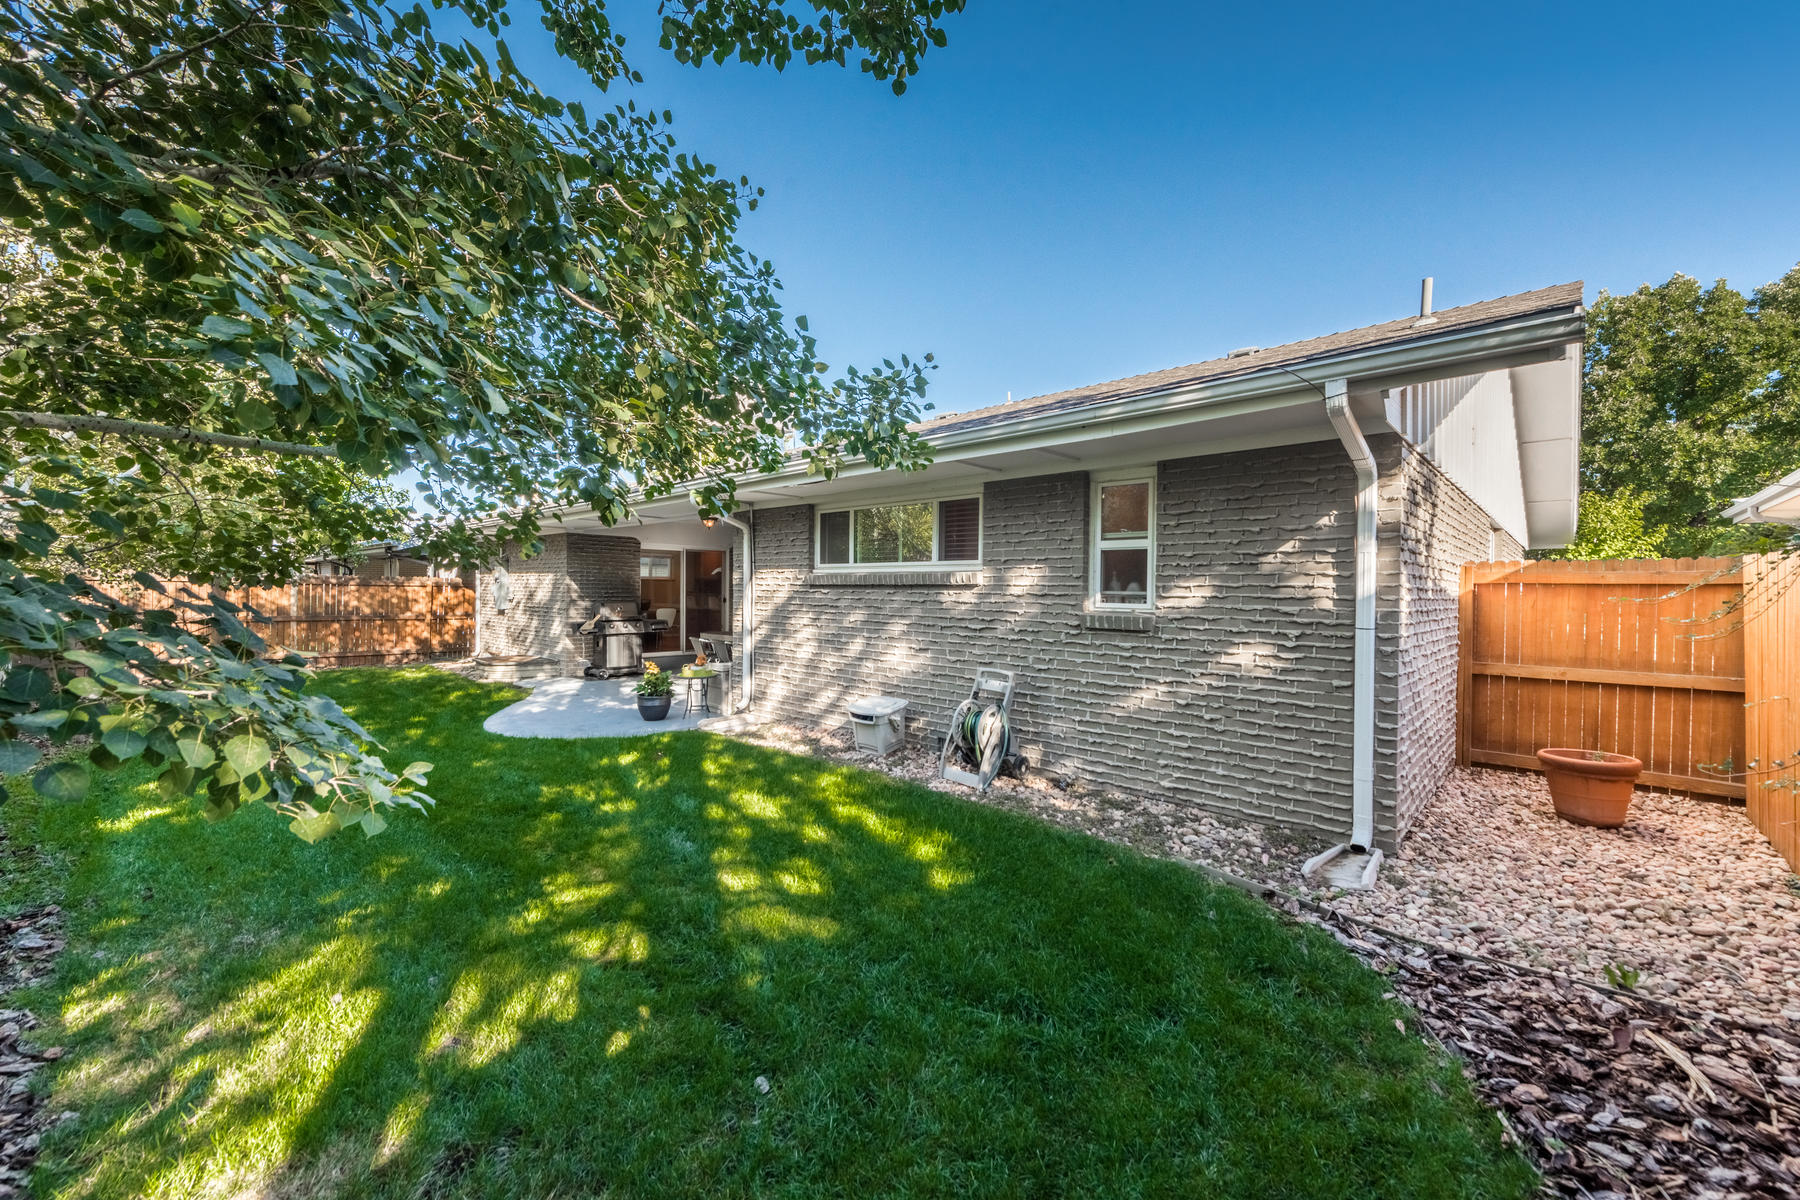 Additional photo for property listing at Modern, Updated Ranch In Desirable Winston Downs 6650 E Virginia Ave Denver, Colorado 80224 United States